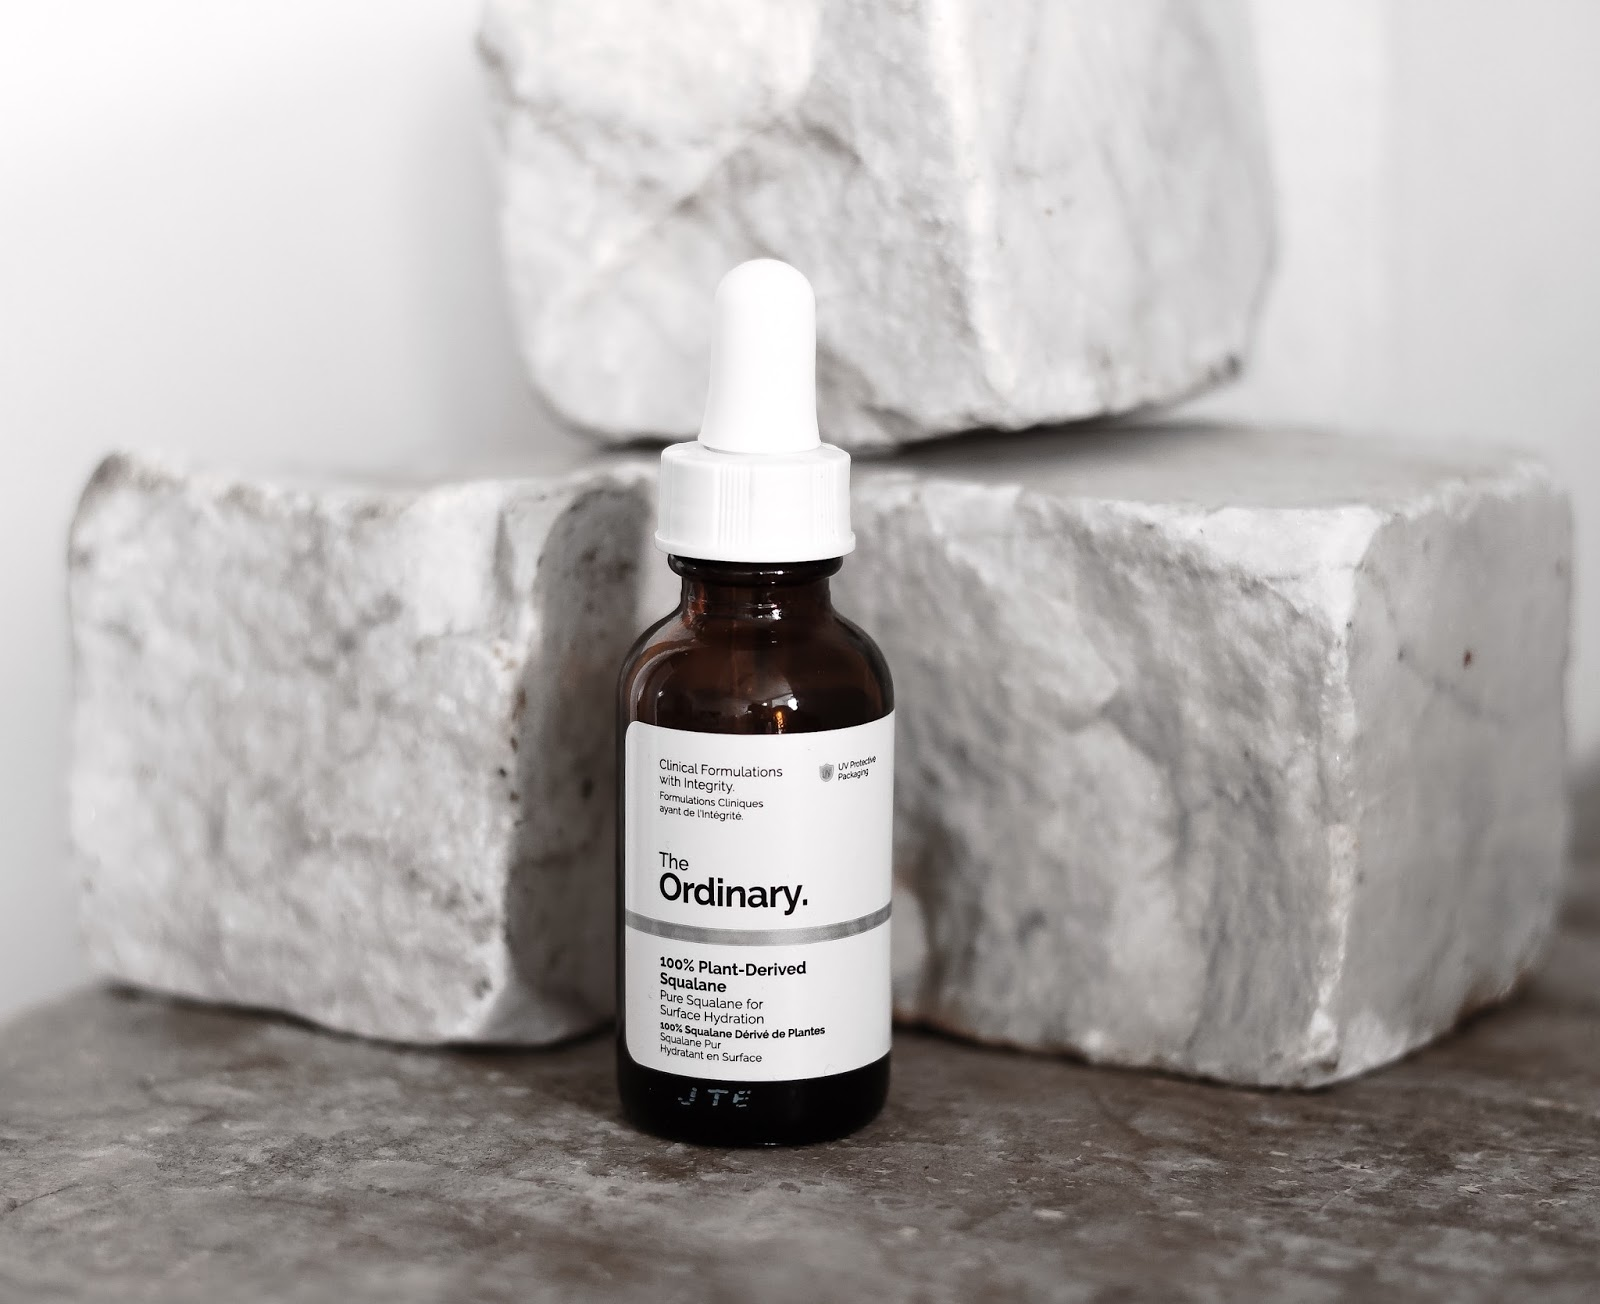 The Ordinary Review Worth The Hype // Beauty by Almost Chic